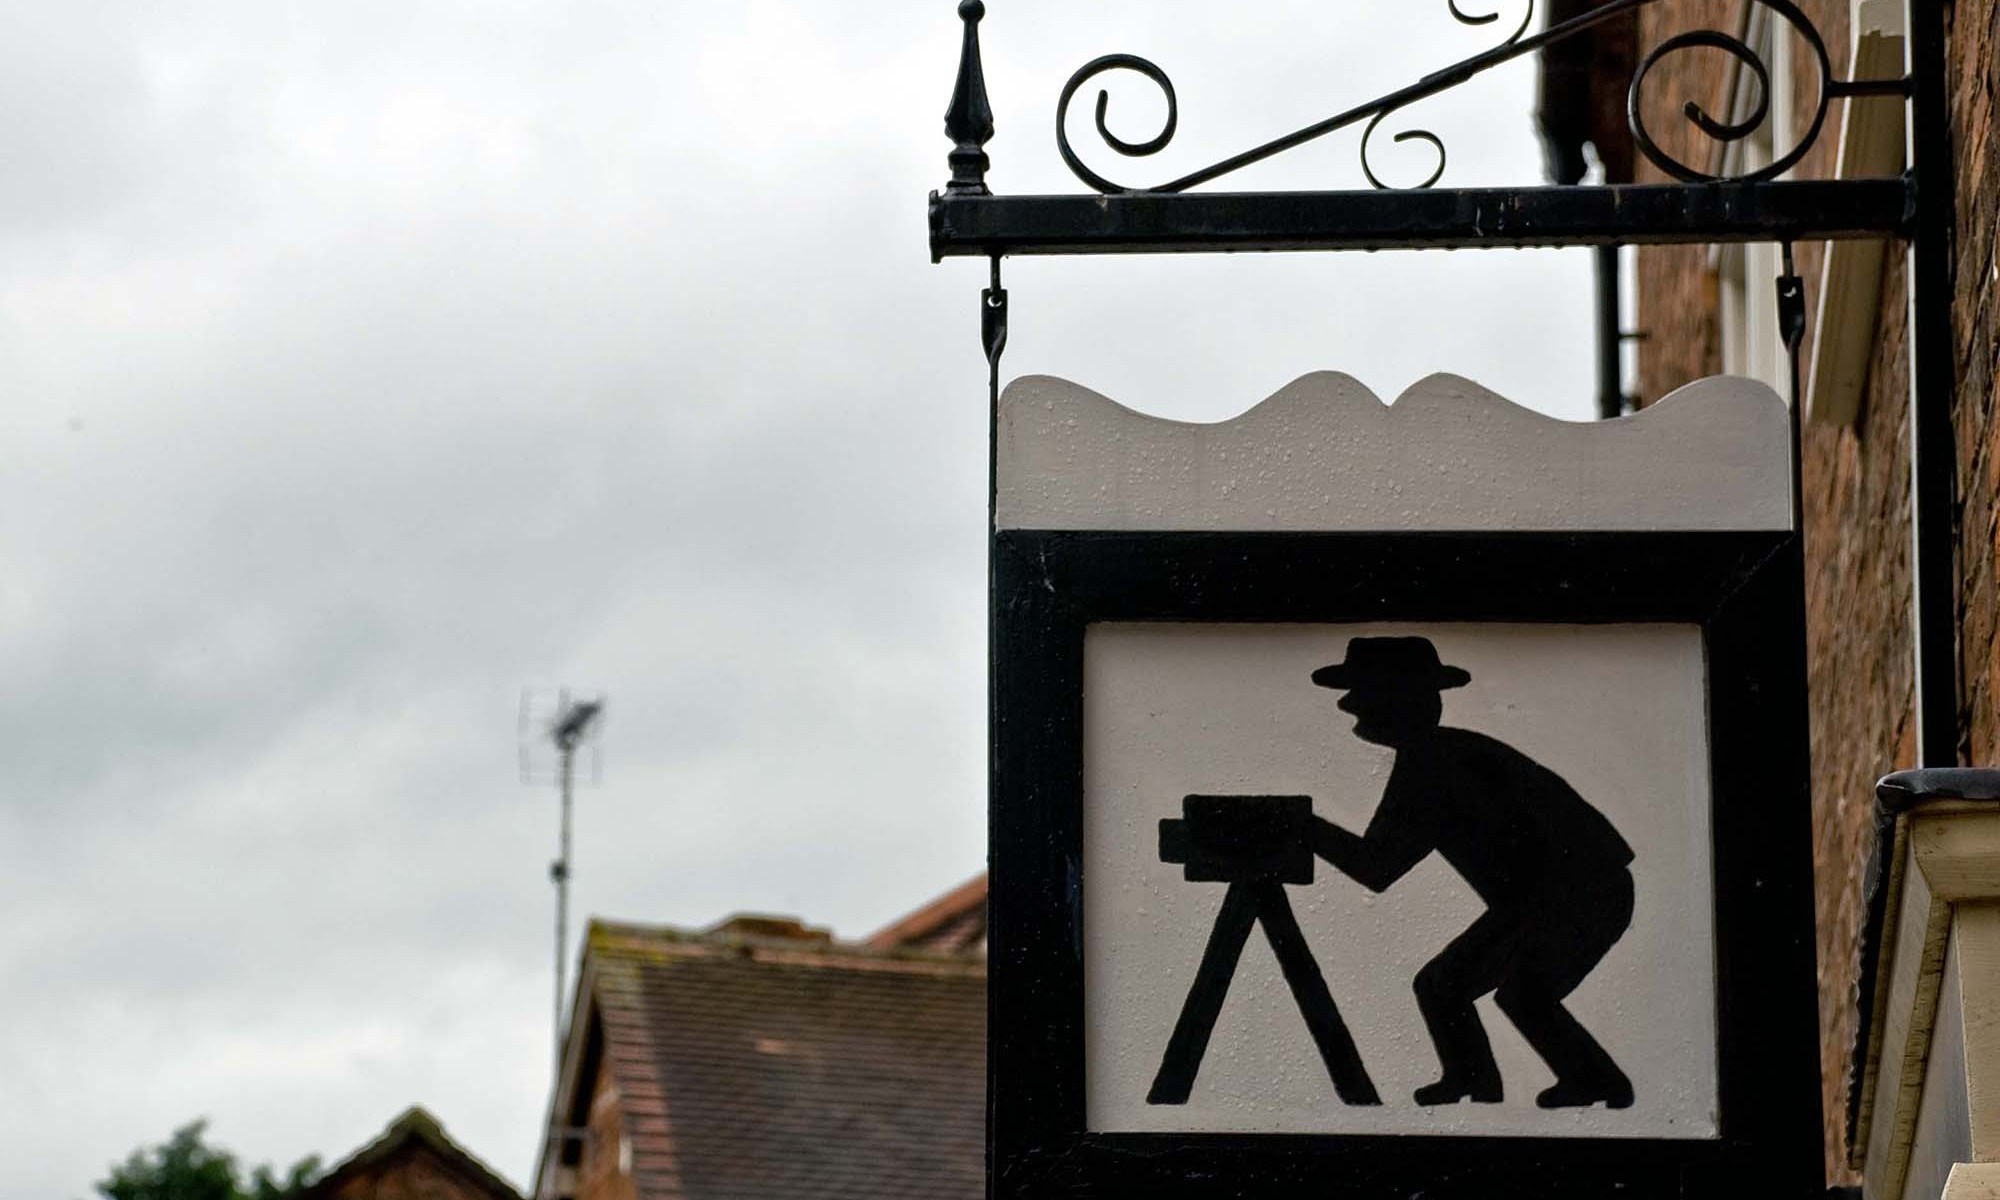 Photographer Sign, Nantwich